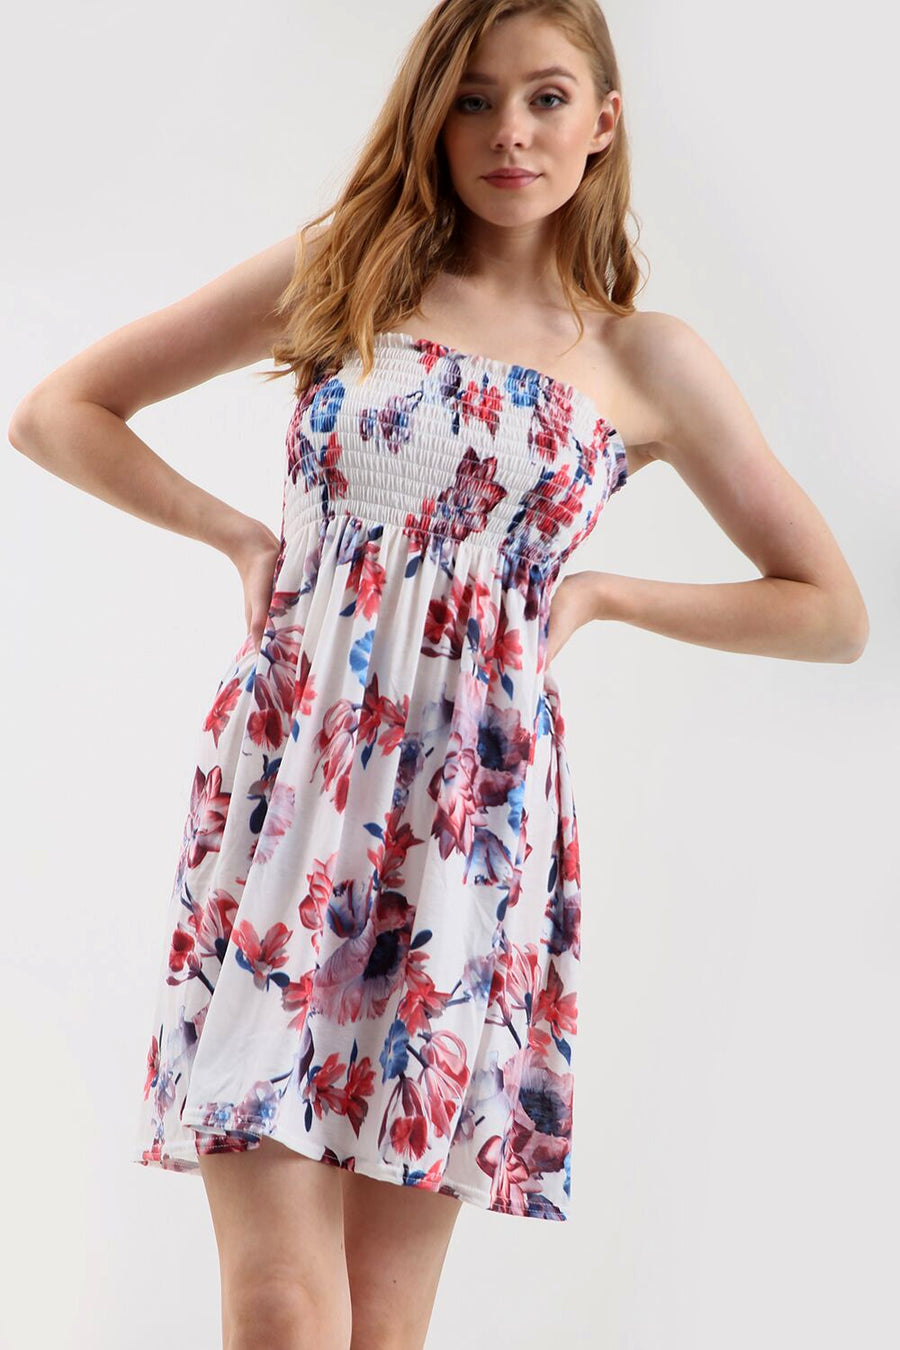 Sammi Sheering Strapless Floral Swing Dress - bejealous-com